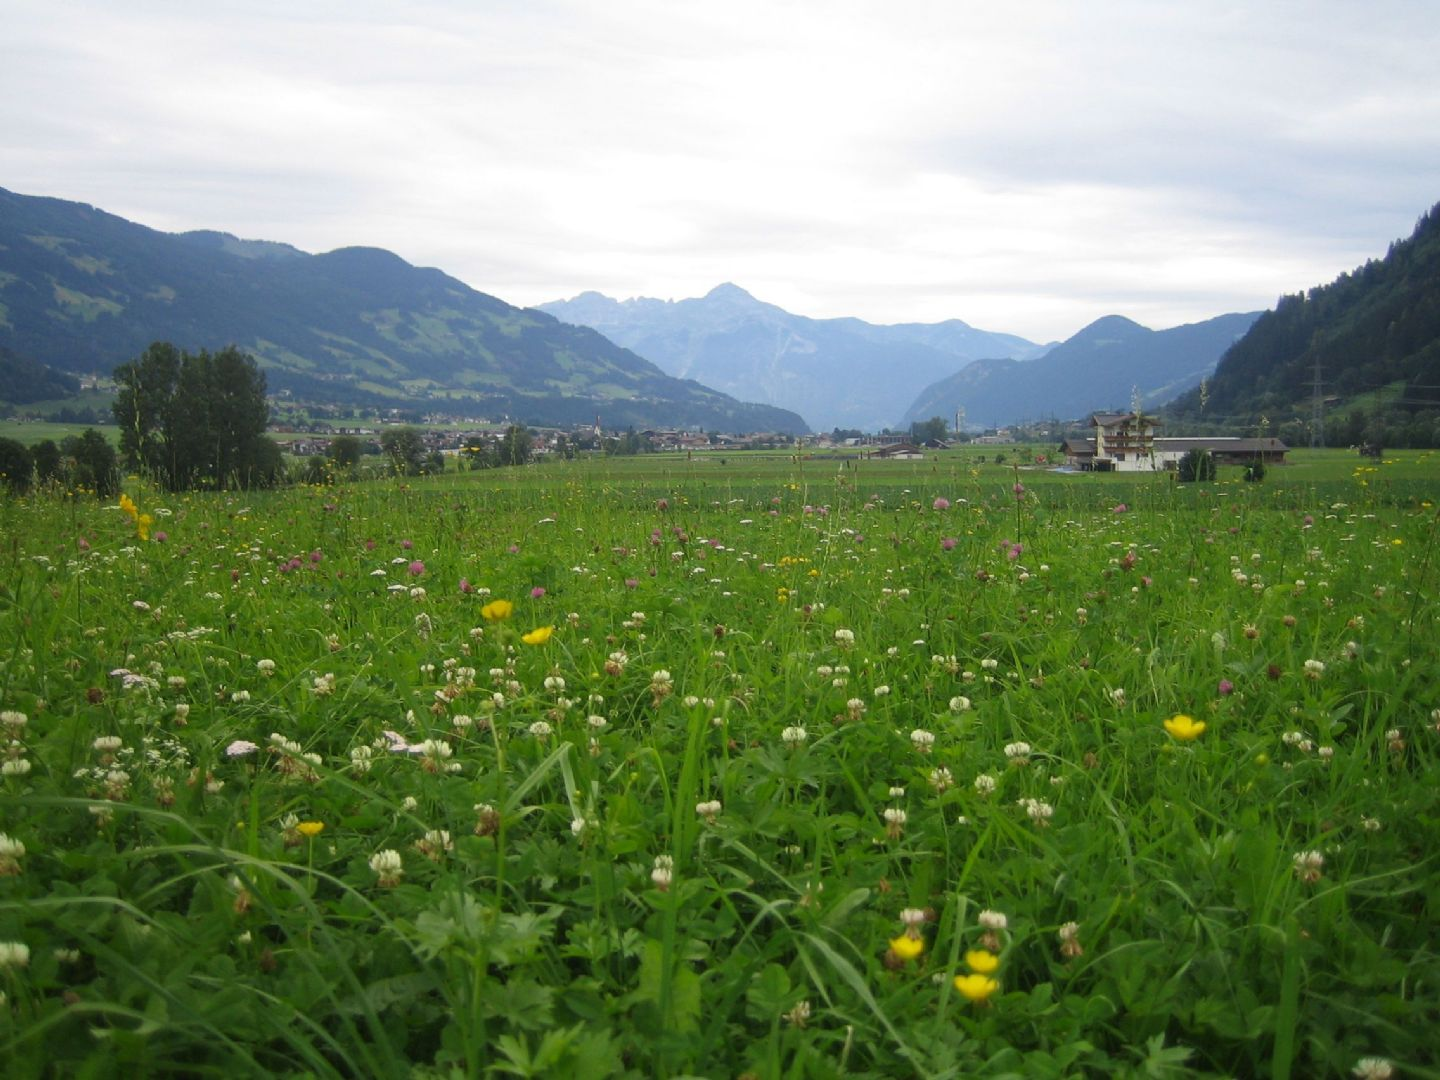 tyr 4.jpg - Austria - Tyrolean Valleys - Self-Guided Leisure Cycling Holiday - Leisure Cycling